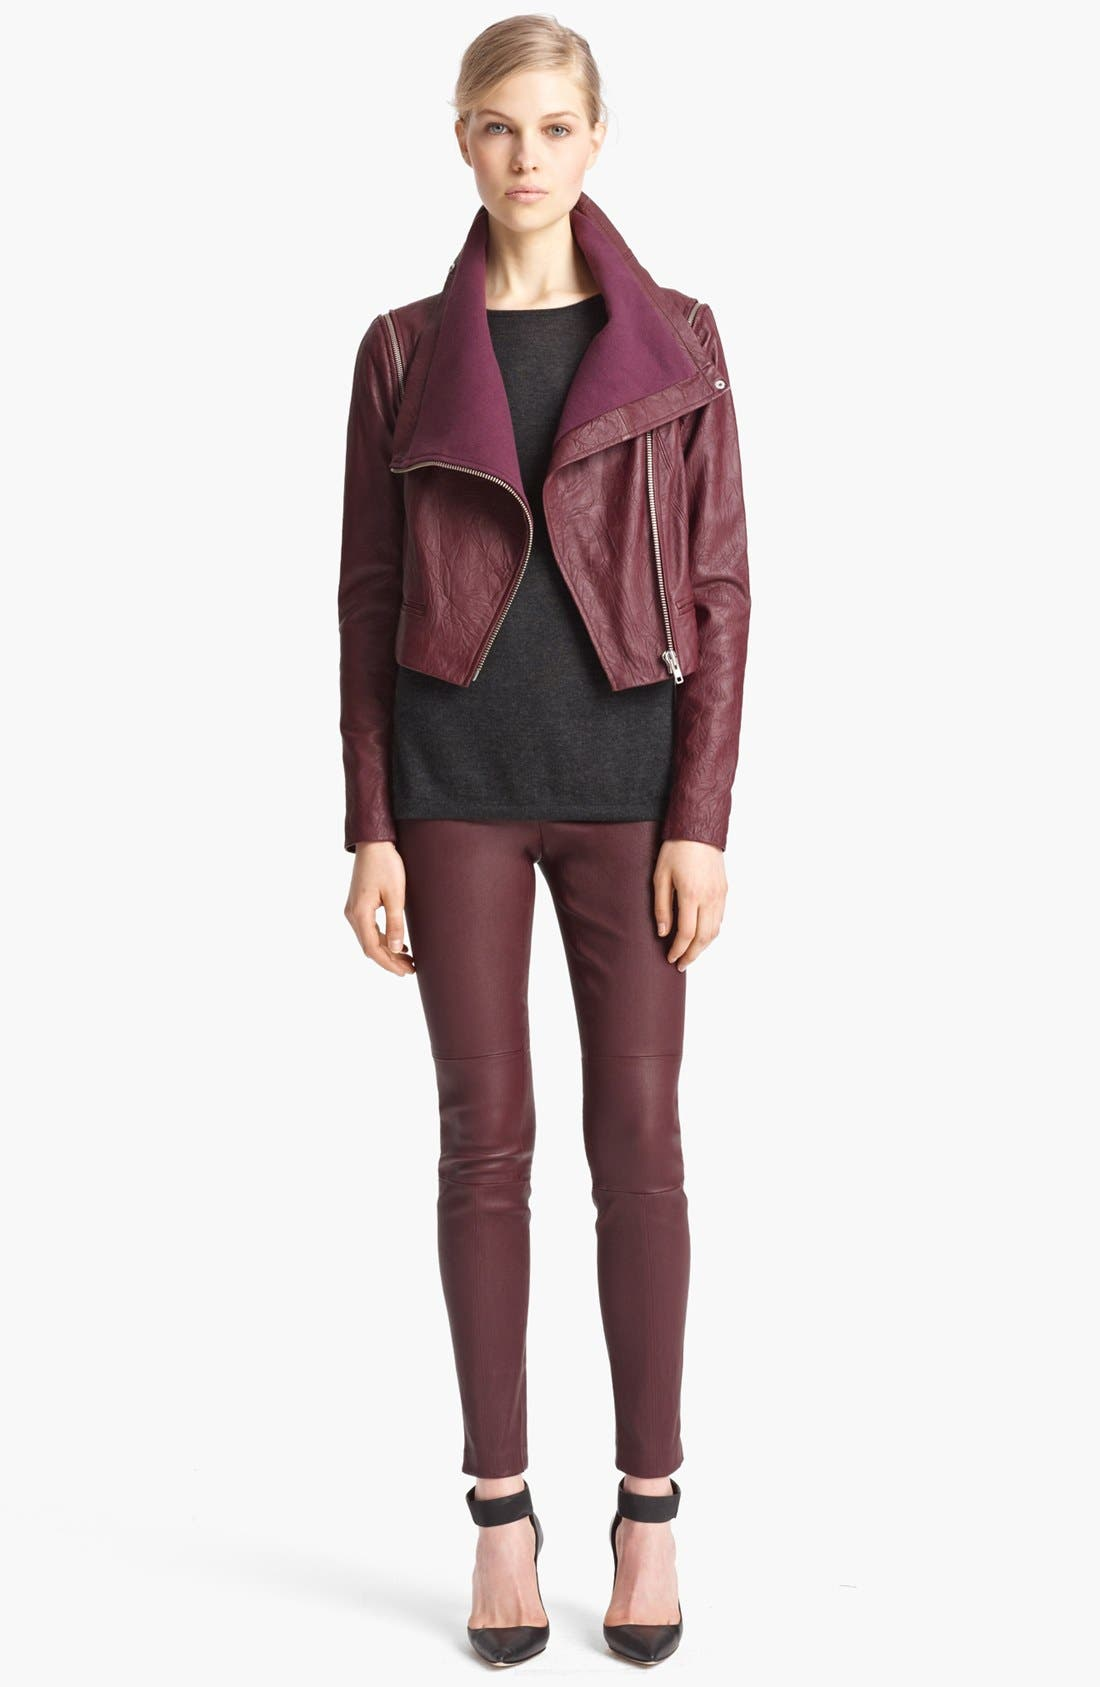 Alternate Image 1 Selected - Yigal Azrouël Moto Jacket & Leggings